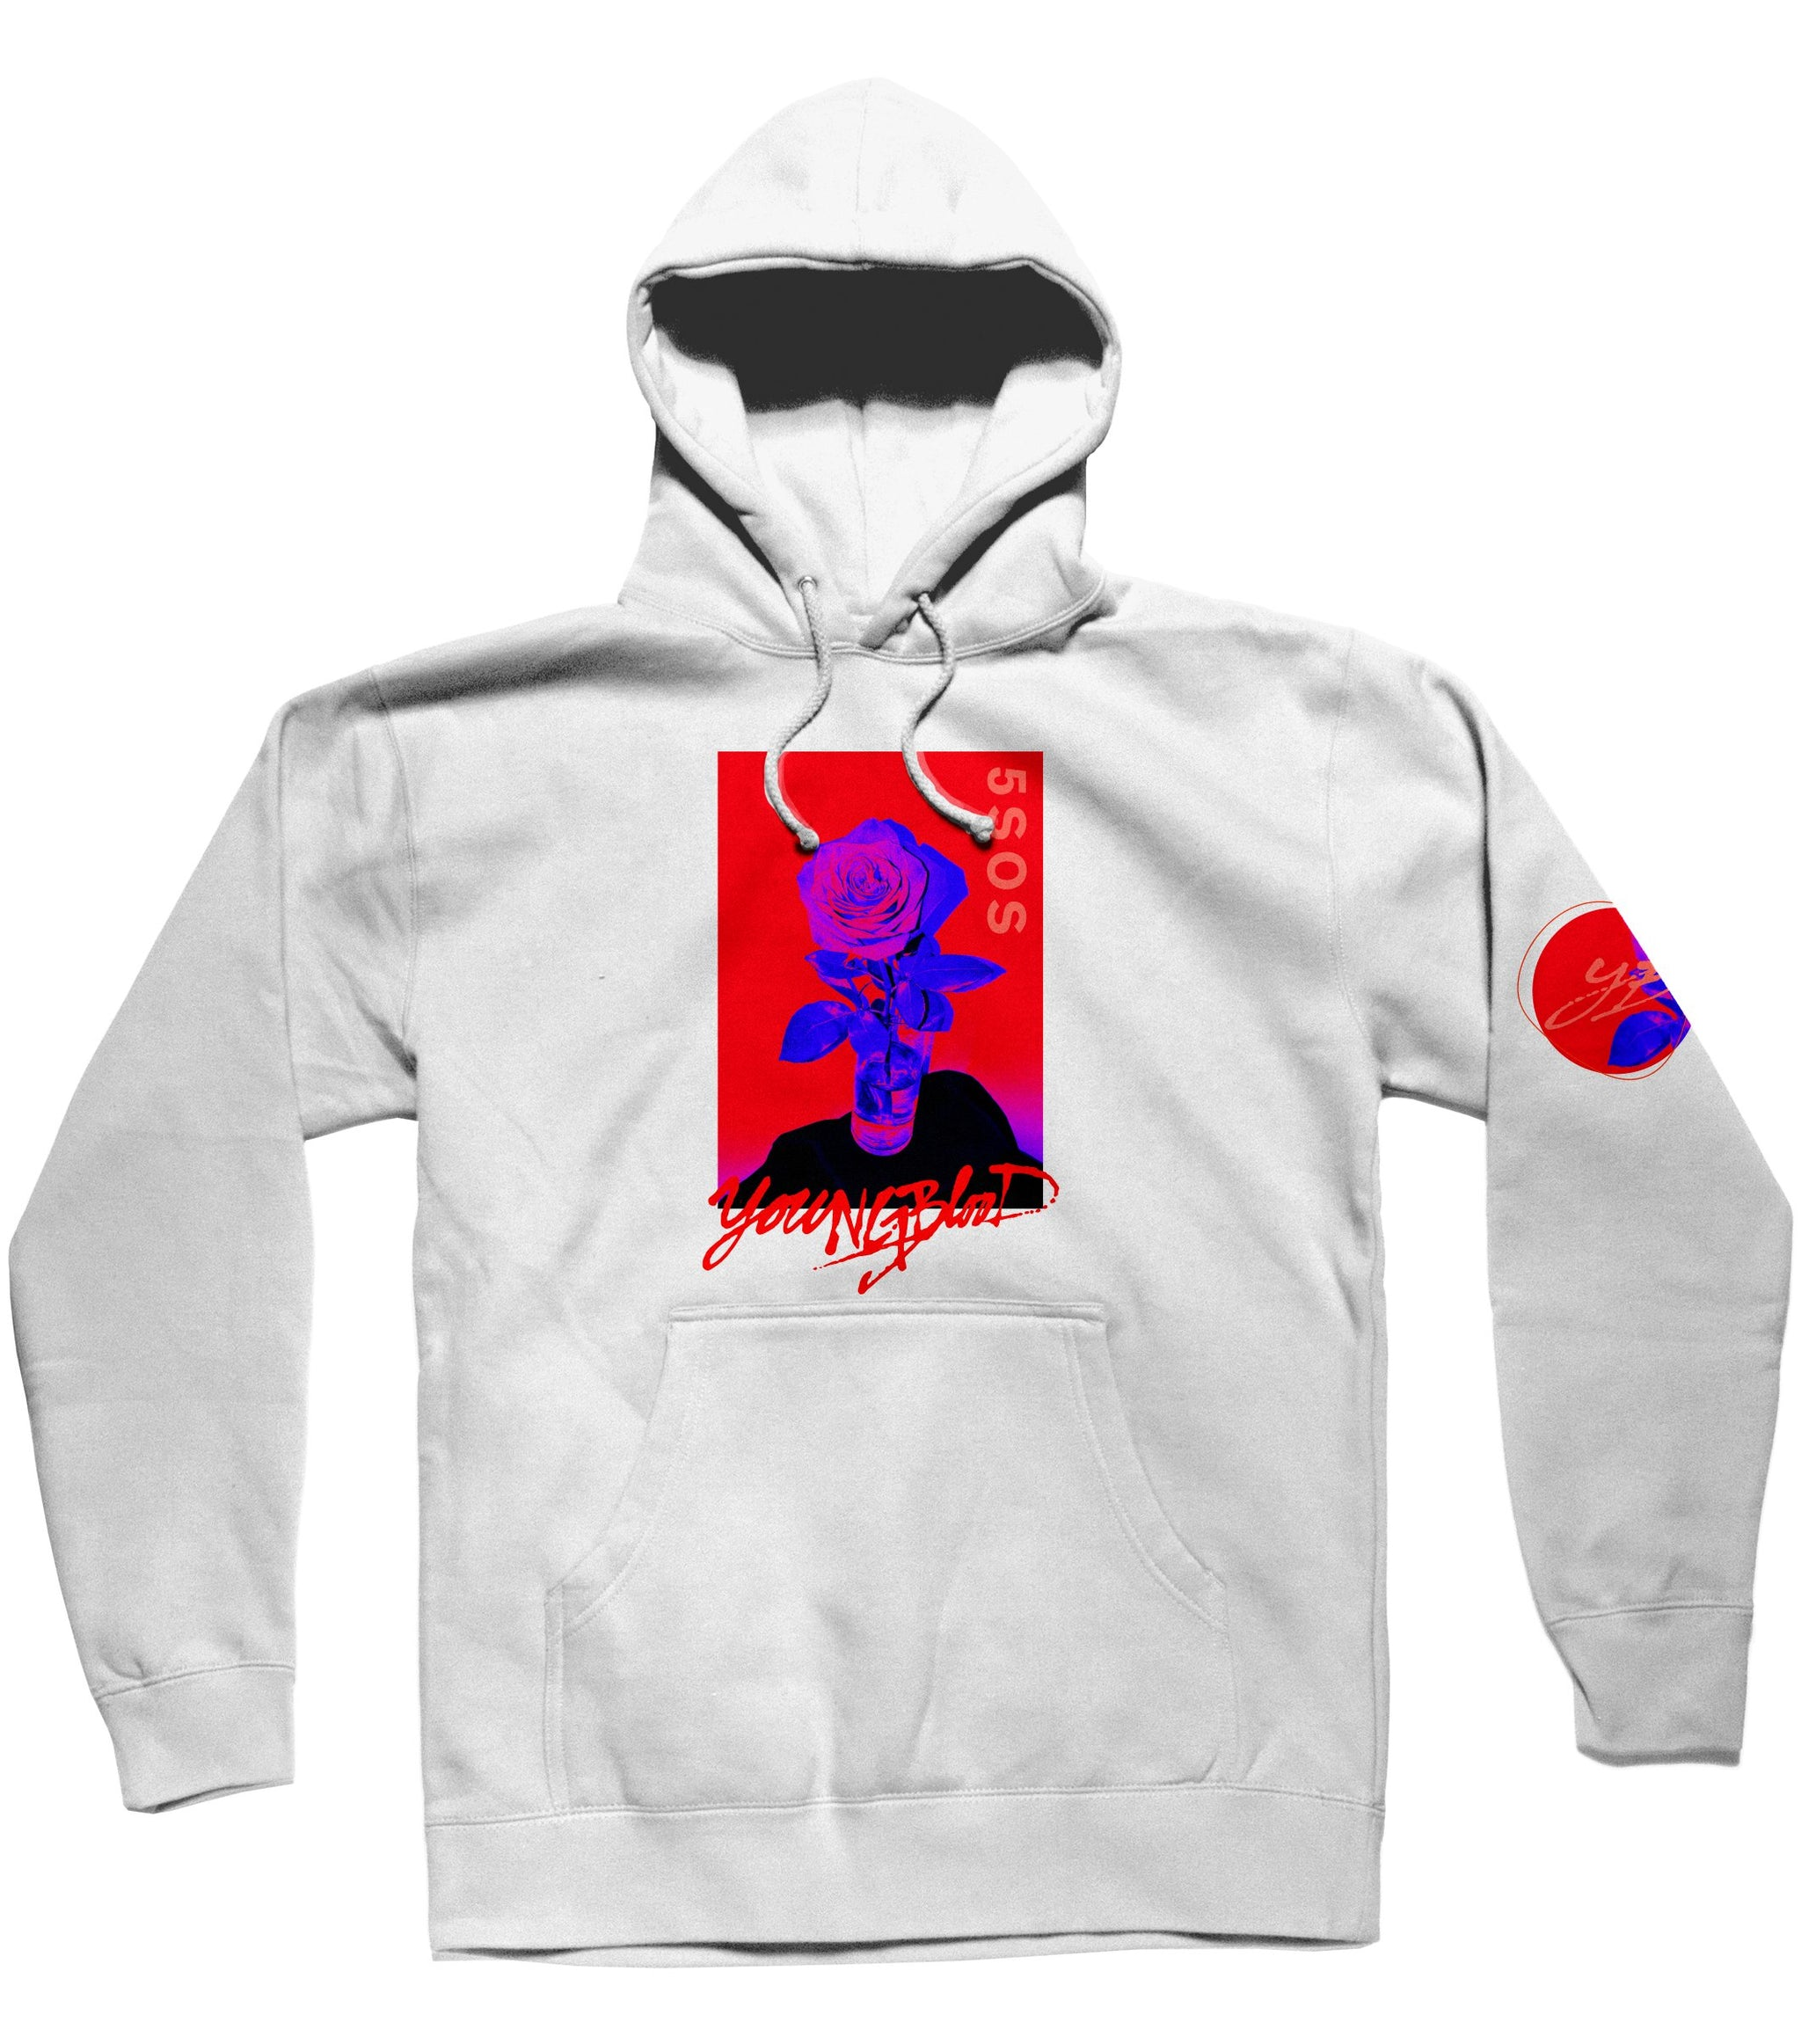 a42096c97f5e White Youngblood Hoodie - Wallflower Merchandise